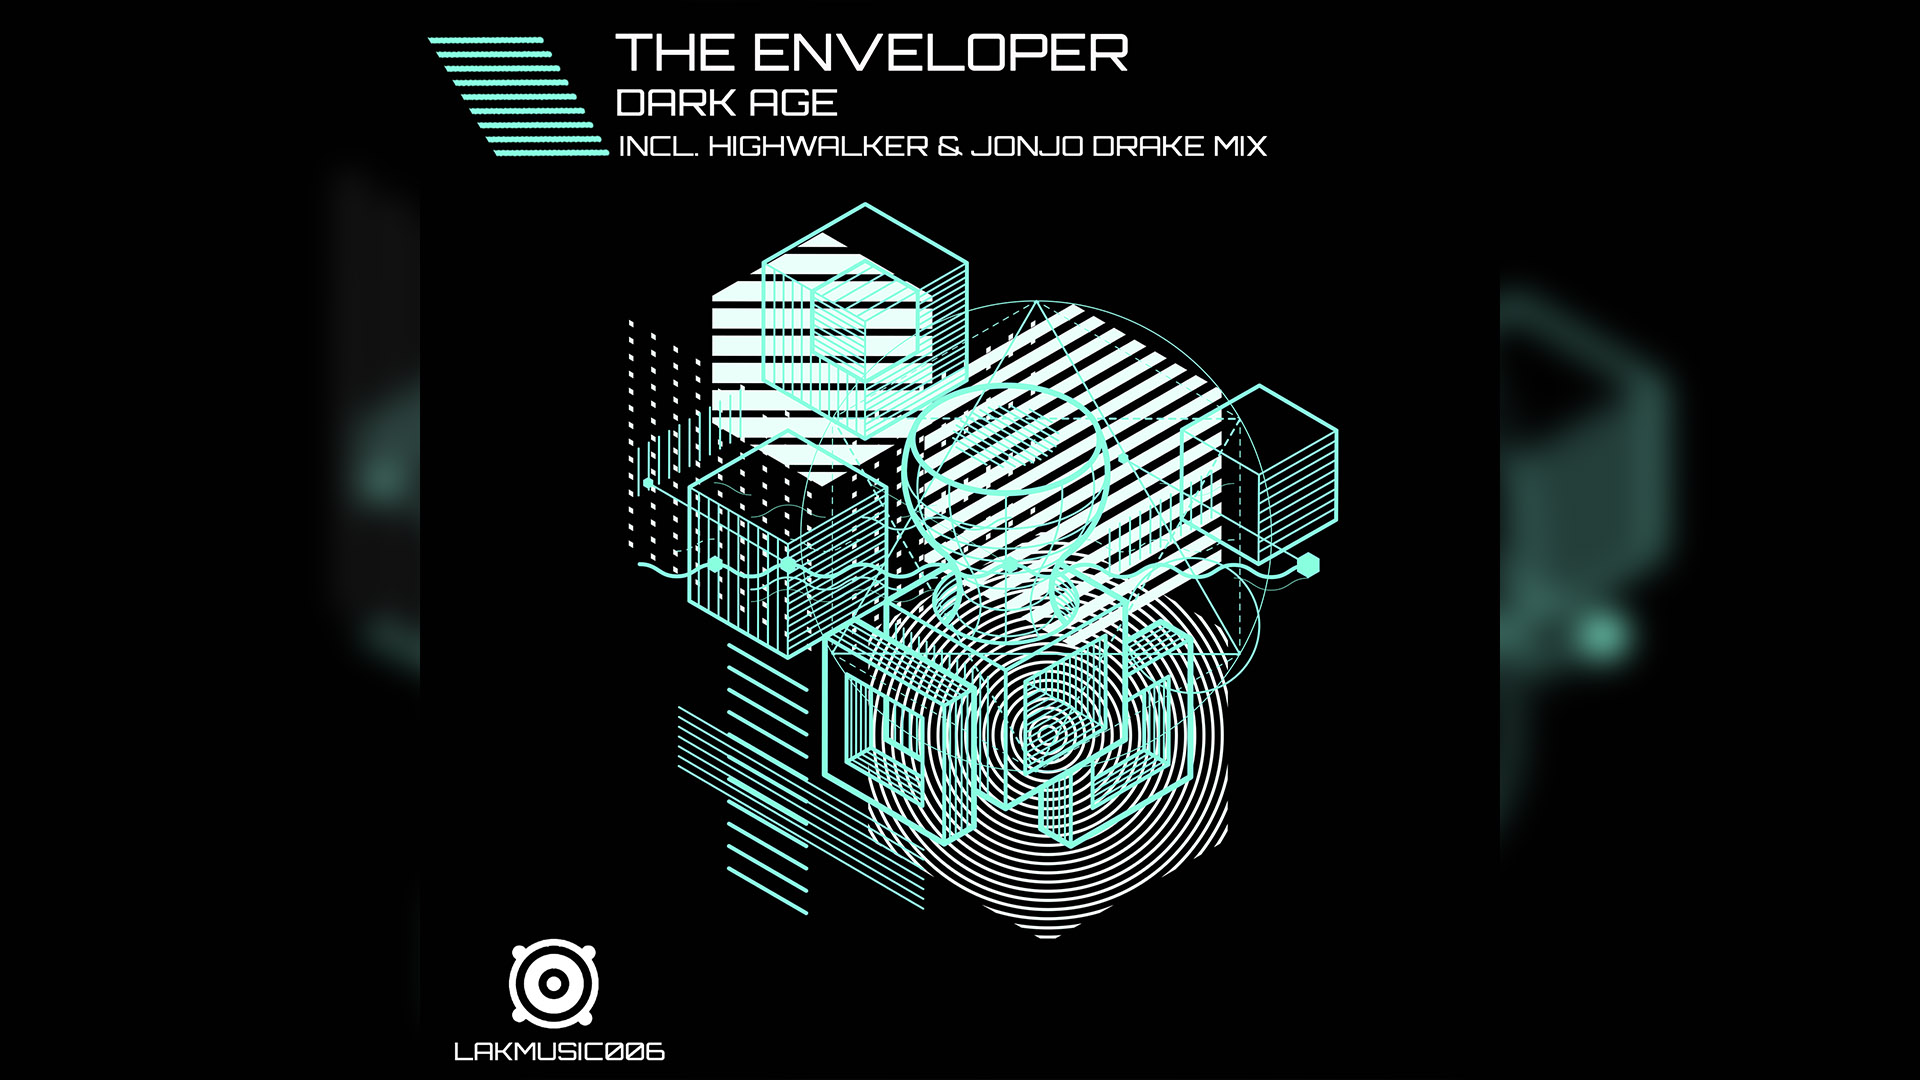 The Enveloper - Dark Age